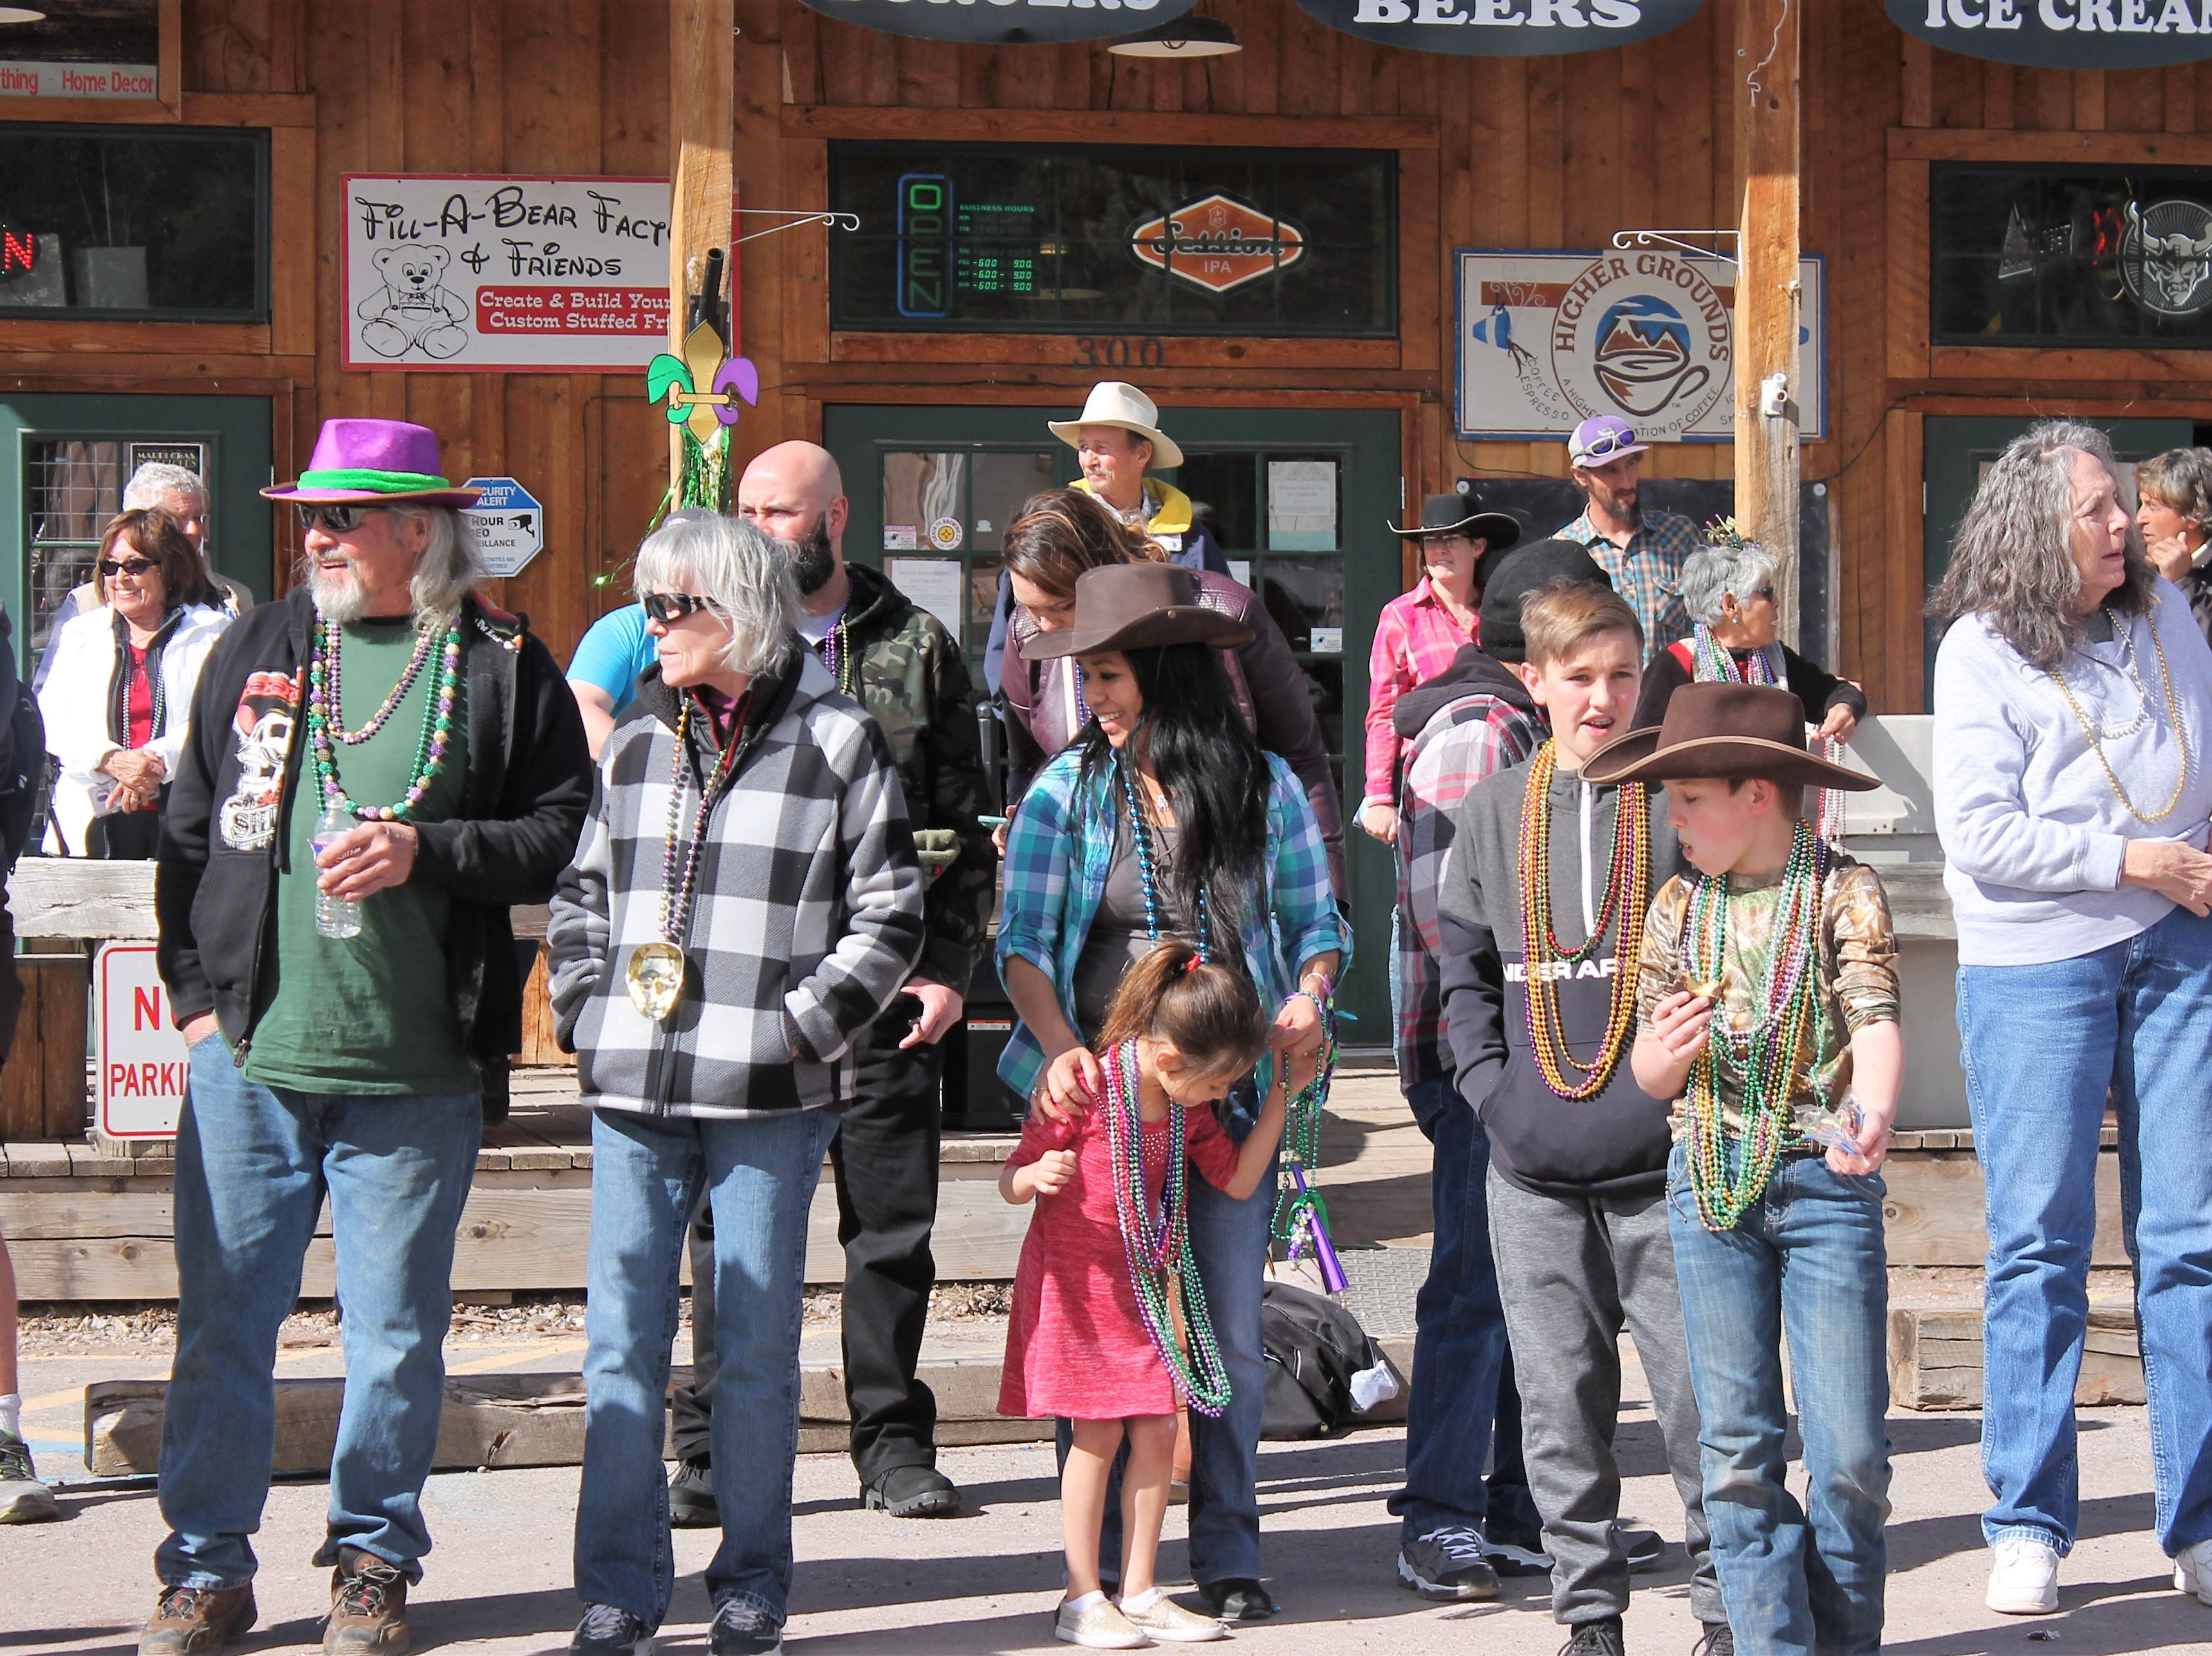 People of all ages were decked out in green and purple at the Mardi Gras Parade in Cloudcroft Saturday.